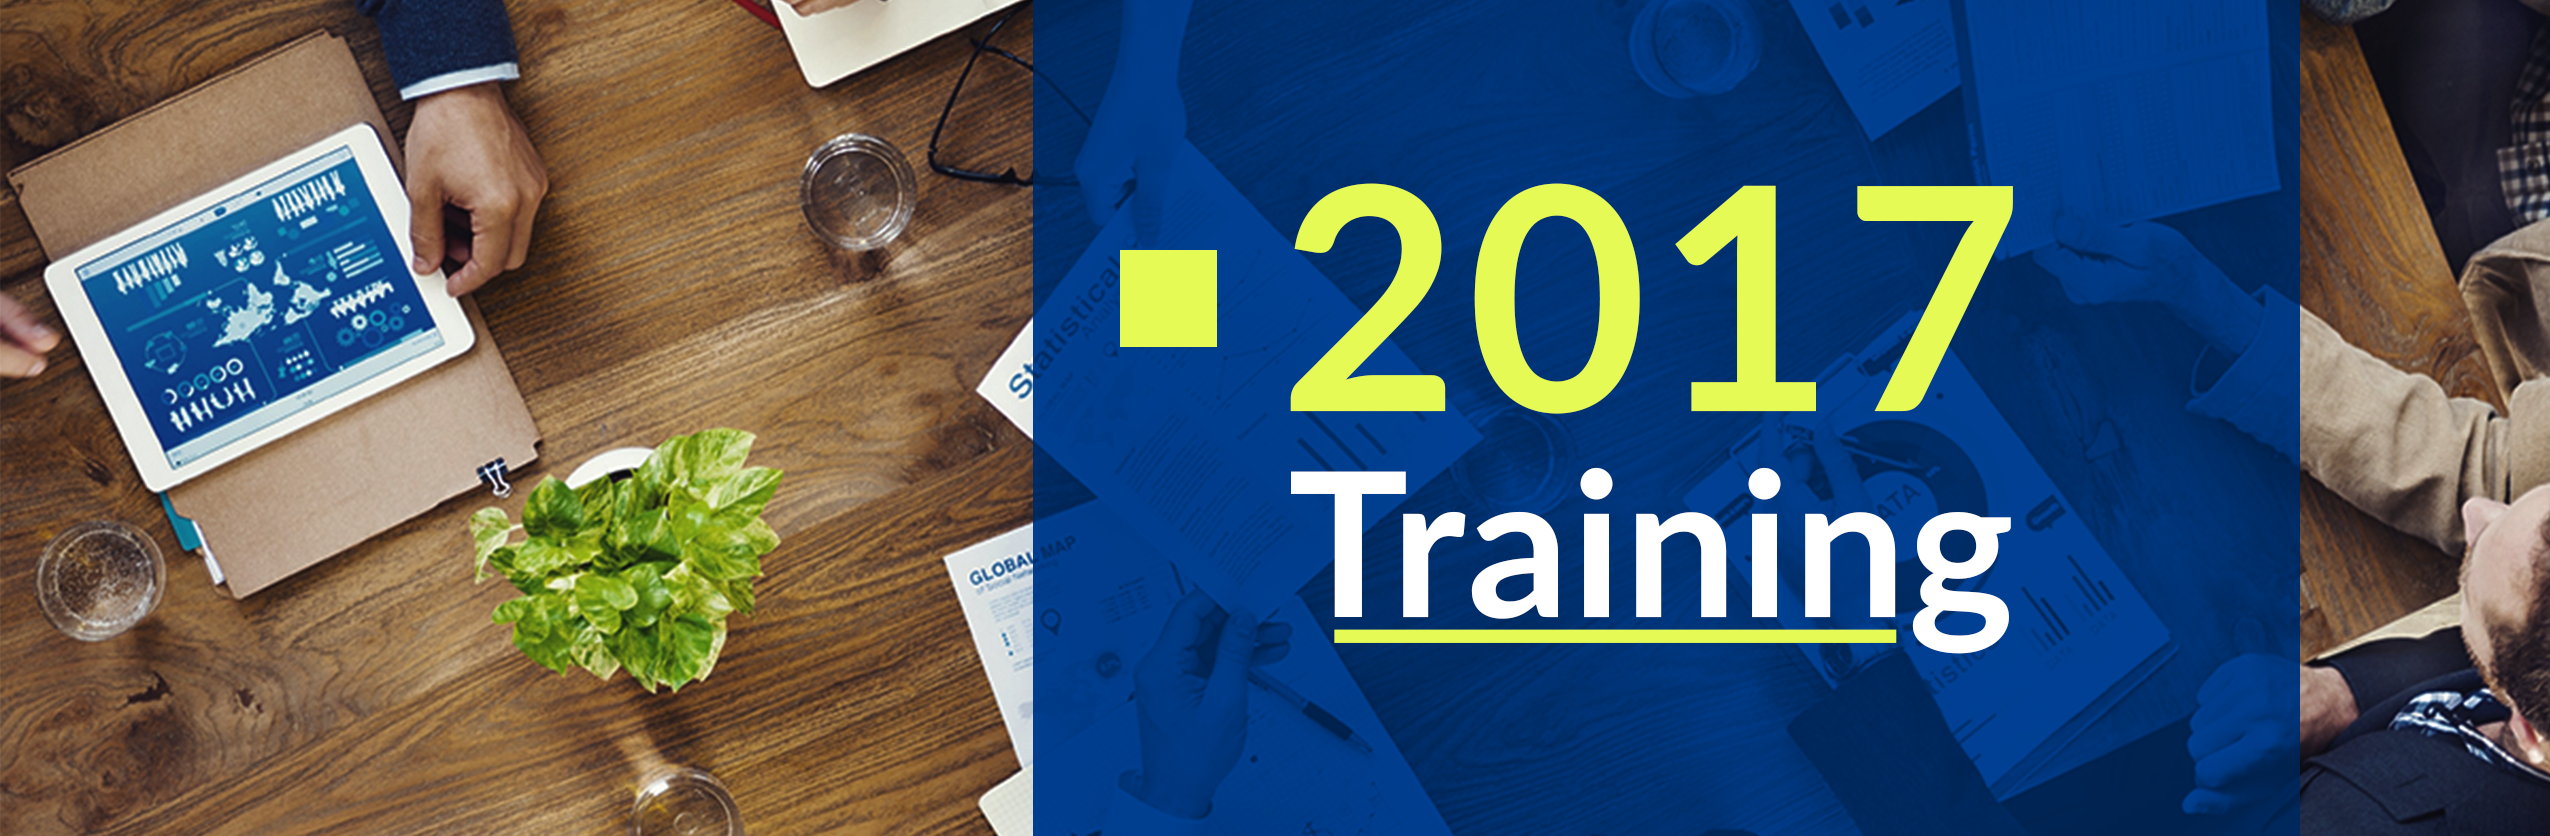 2017-Training-Banner.png